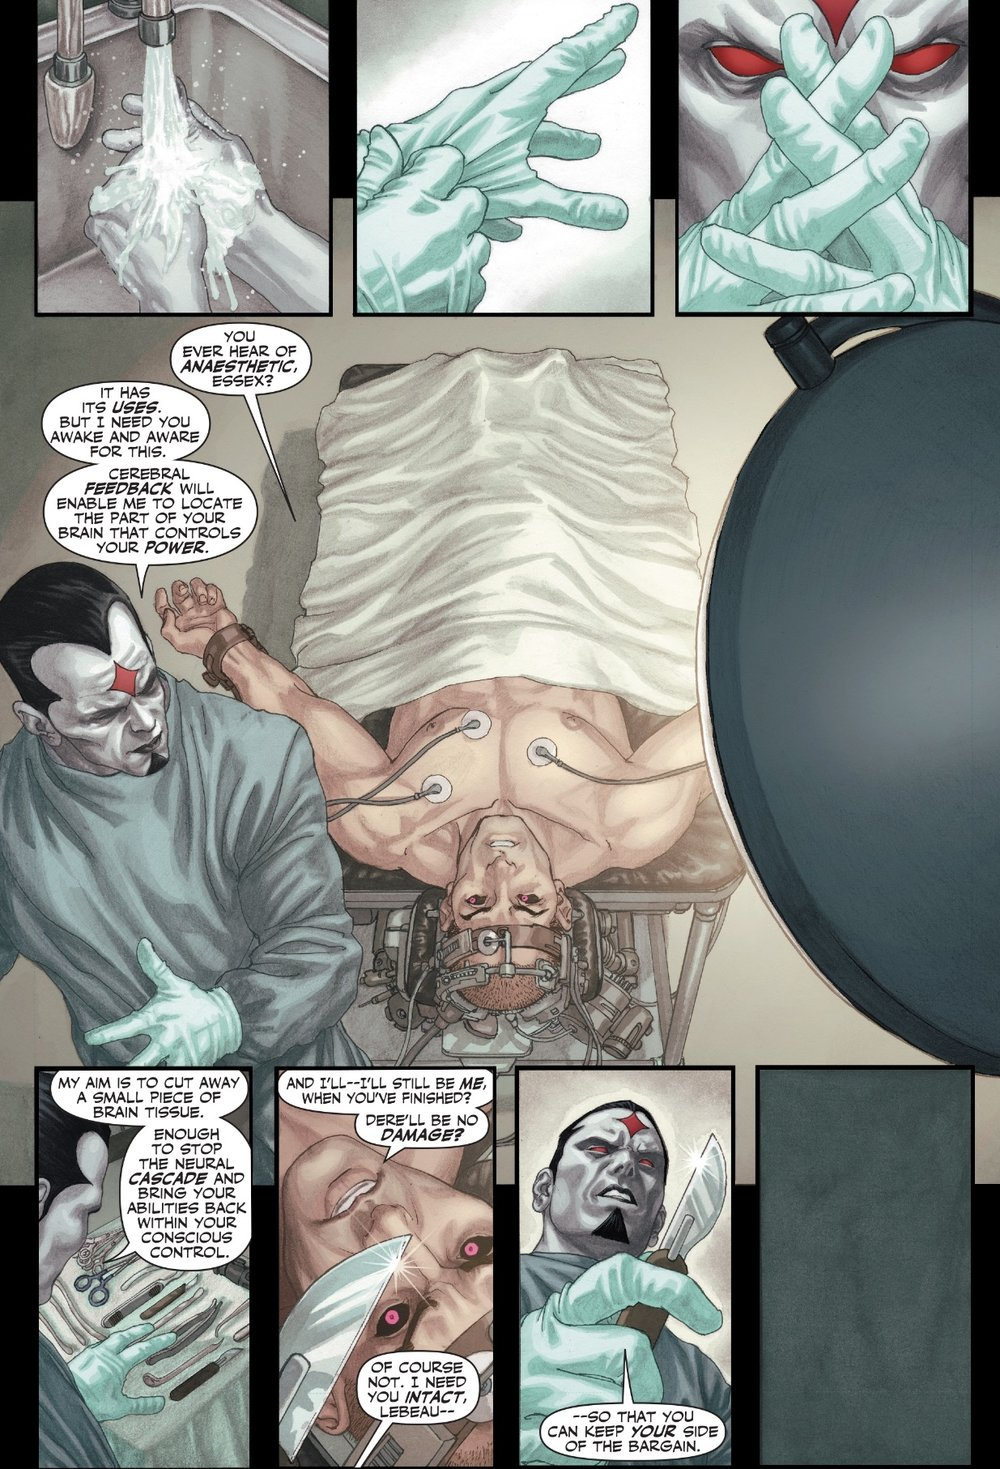 Mr. Sinister removing part of Gambit's brain ( X-Men Origins: Gambit ).